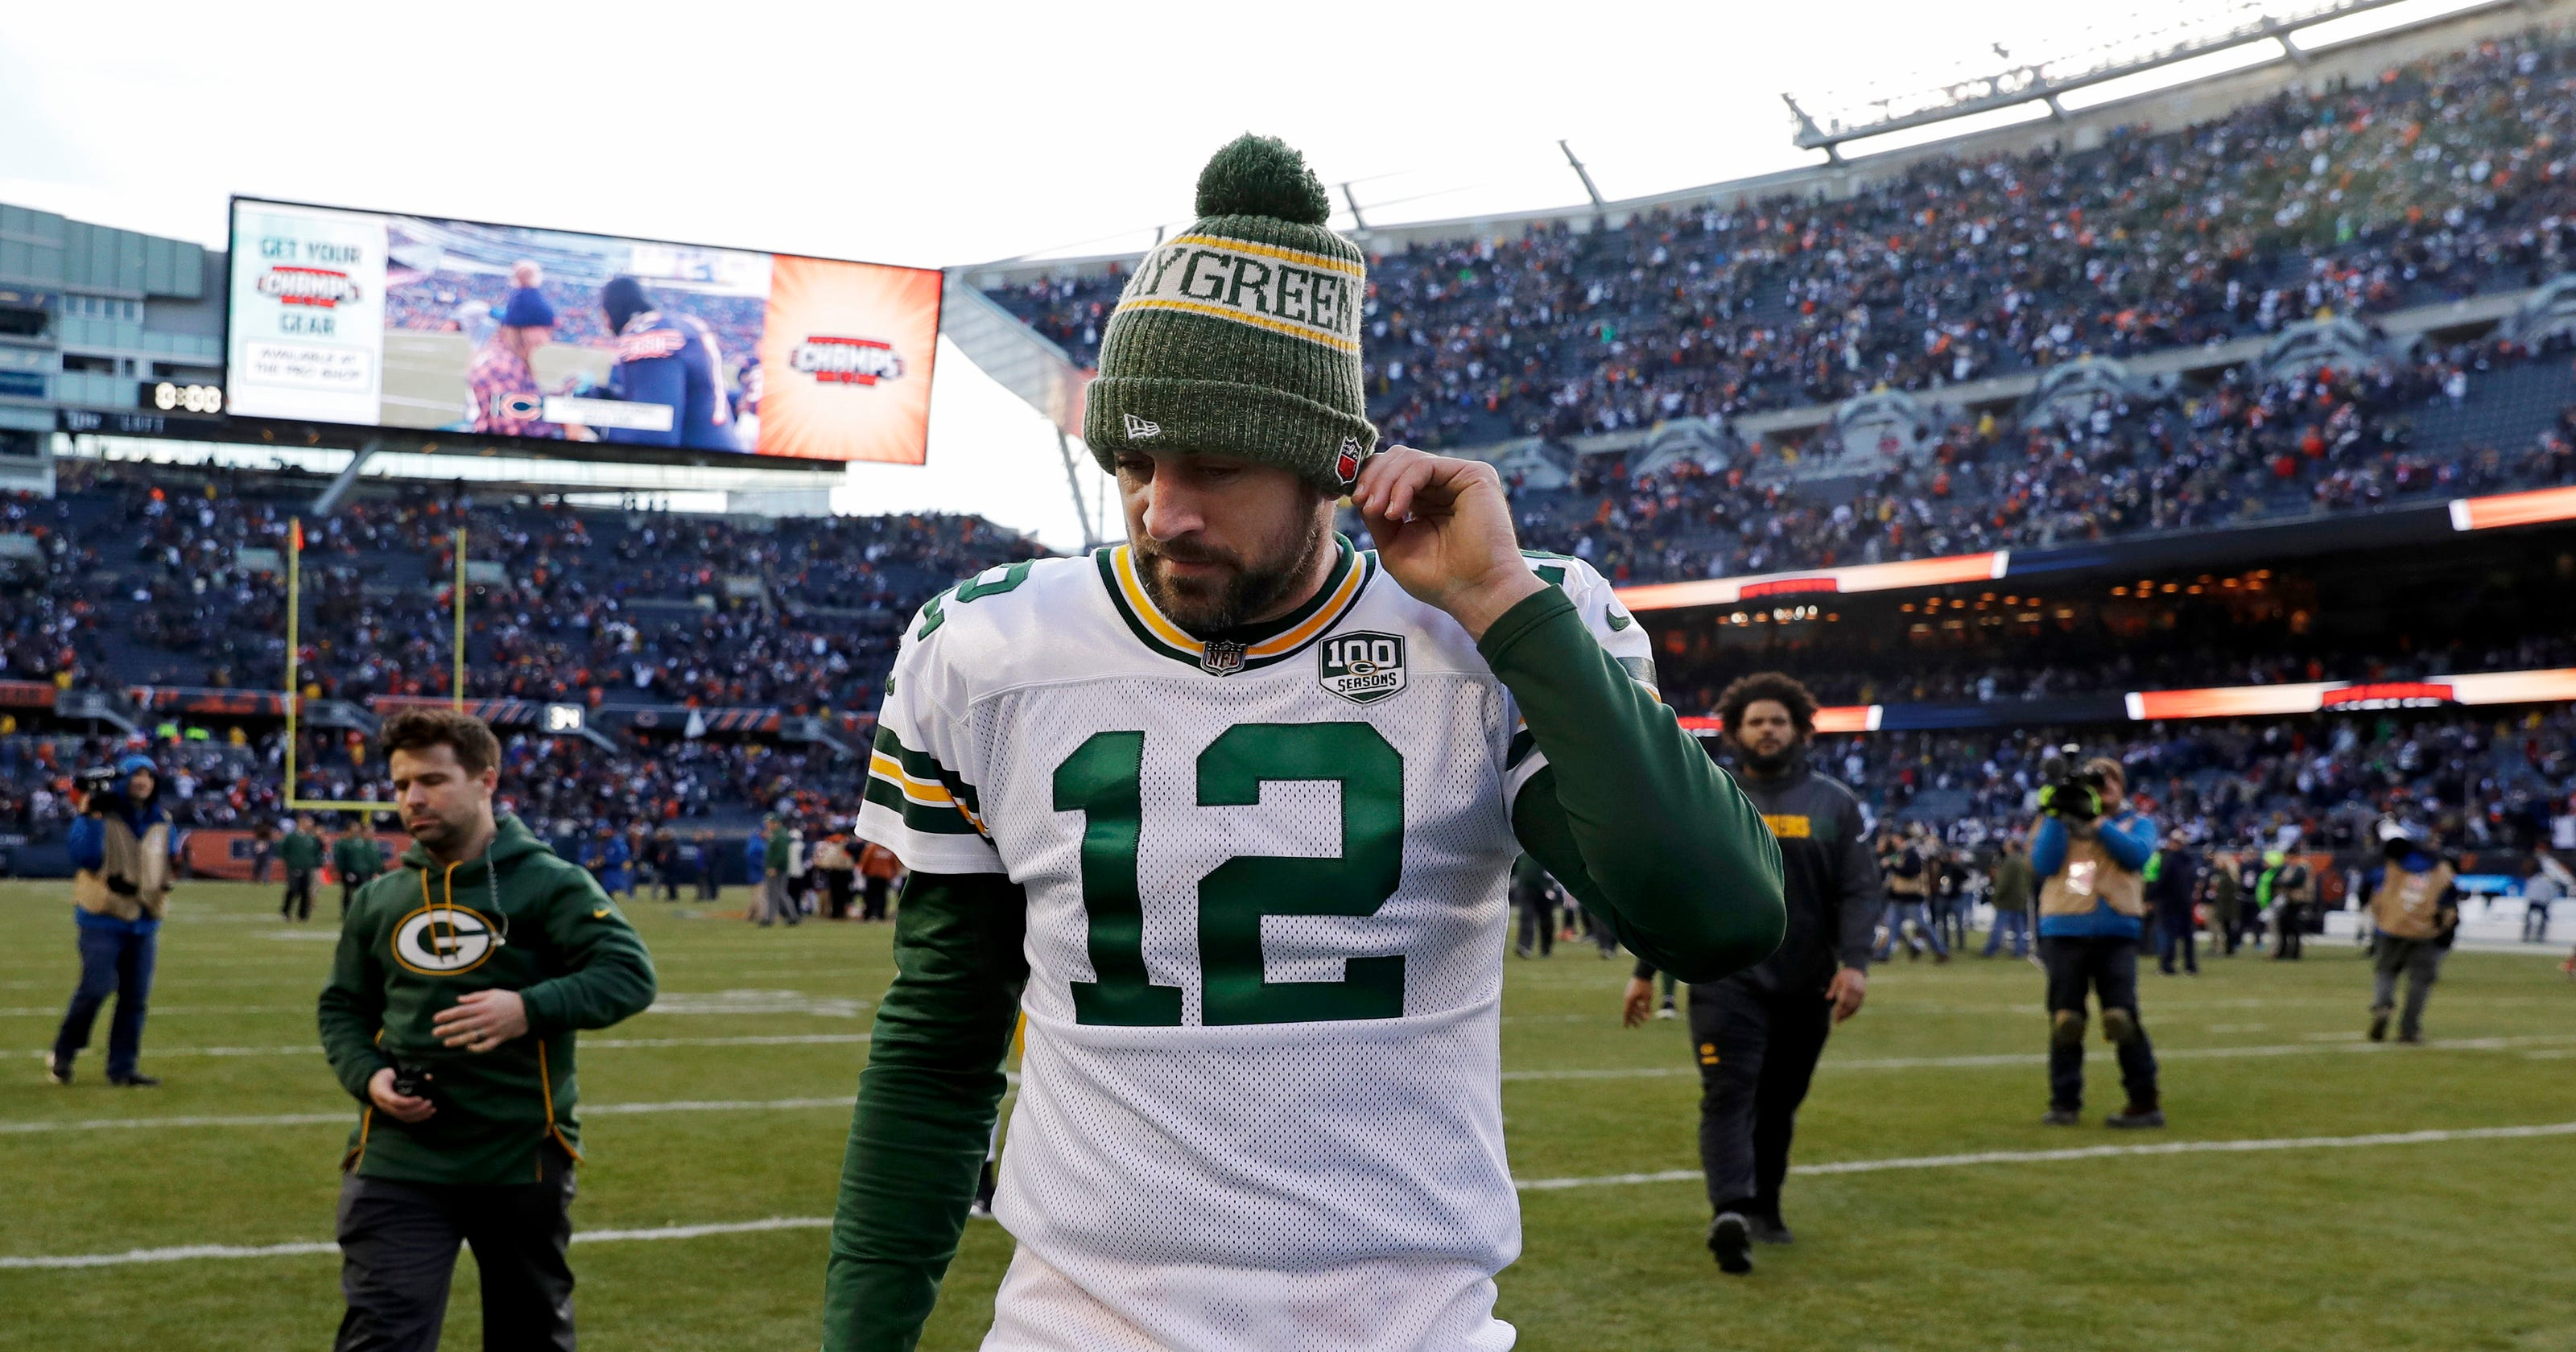 Aaron Rodgers: Green Bay Packers QB ripped by LeRoy Butler after loss